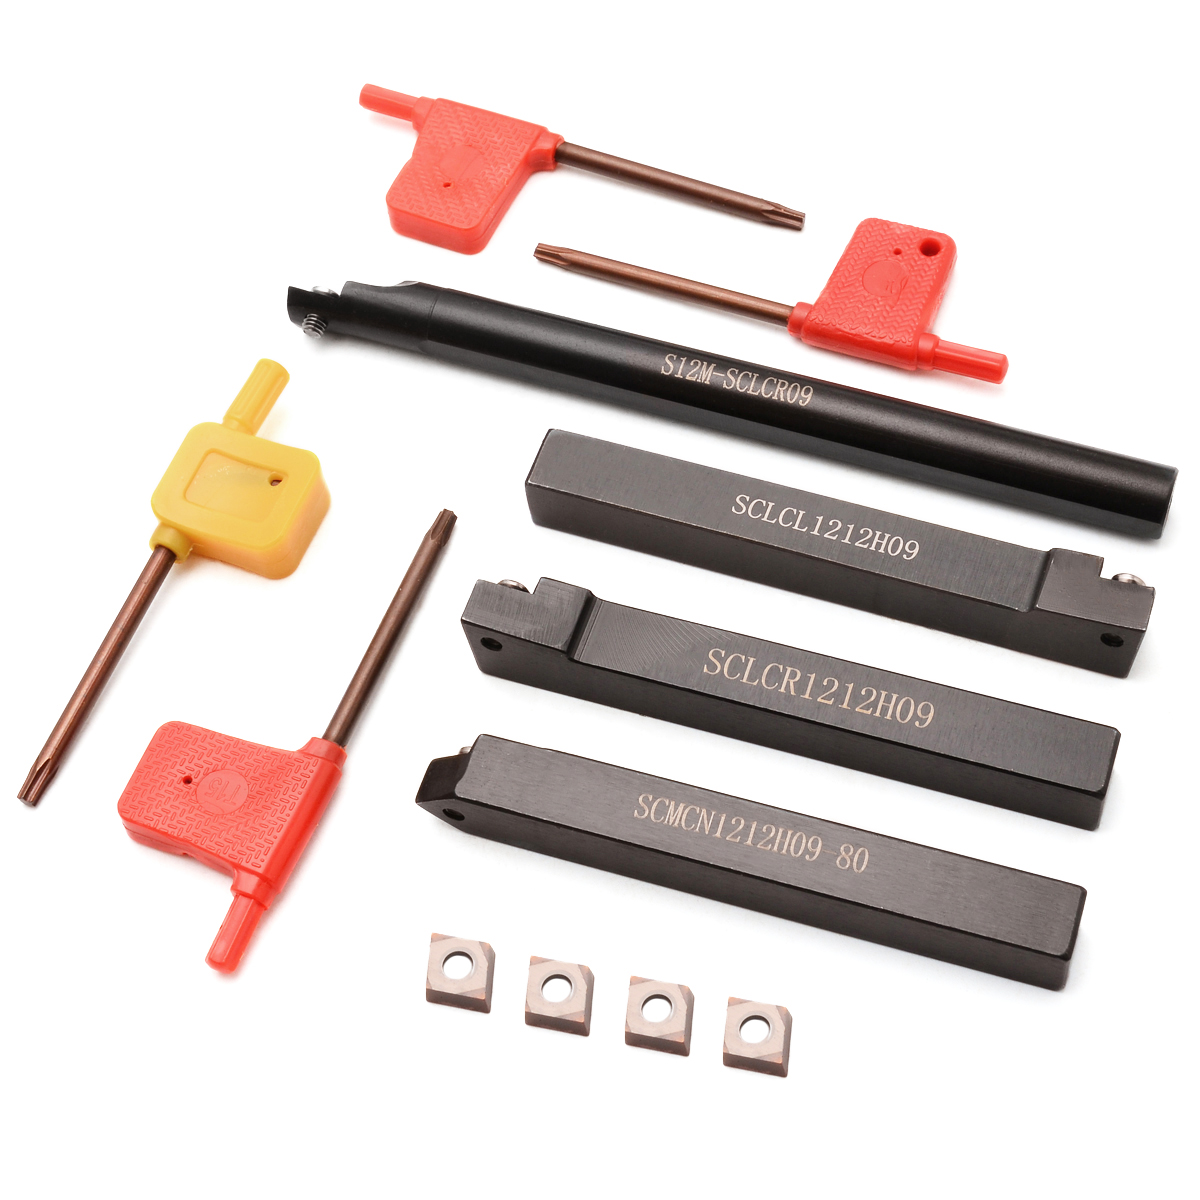 4pcs S12M-SCLCR09/SCLCR/SCLCL/SCMCN1212H09 Boring Bar 12mm Lathe Index Turning Tool Holder + 4pcs CCMT 09T3 Insert with Wrenches 4pcs sclcr06 tool holder boring bar 10pcs inserts with t8 wrench for lathe turning tools